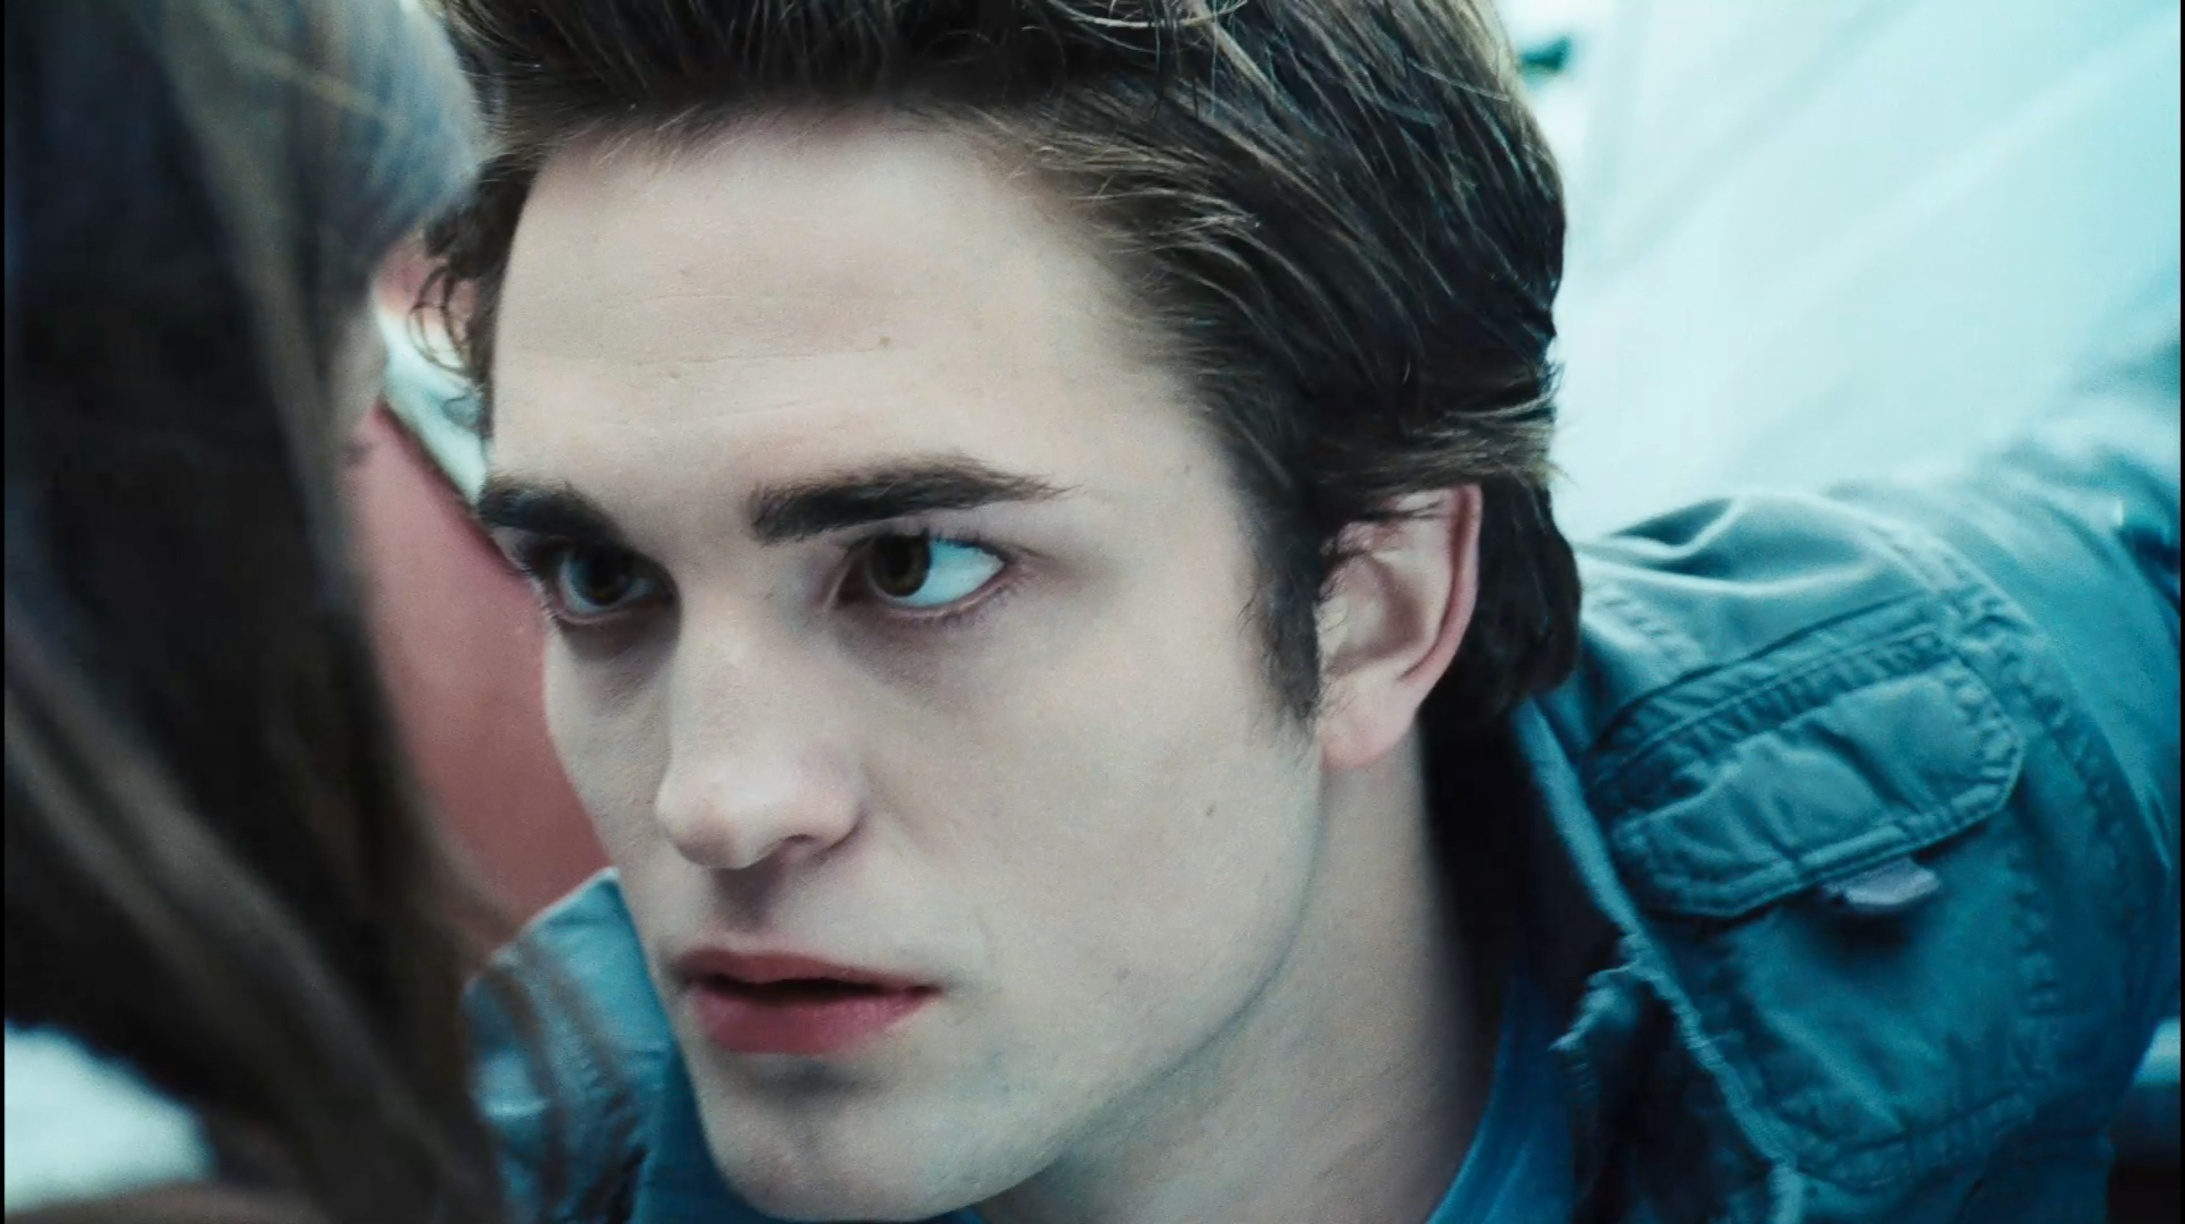 Edward and bella images bella edward twilight trailer 3 hq for Twilight edward photos